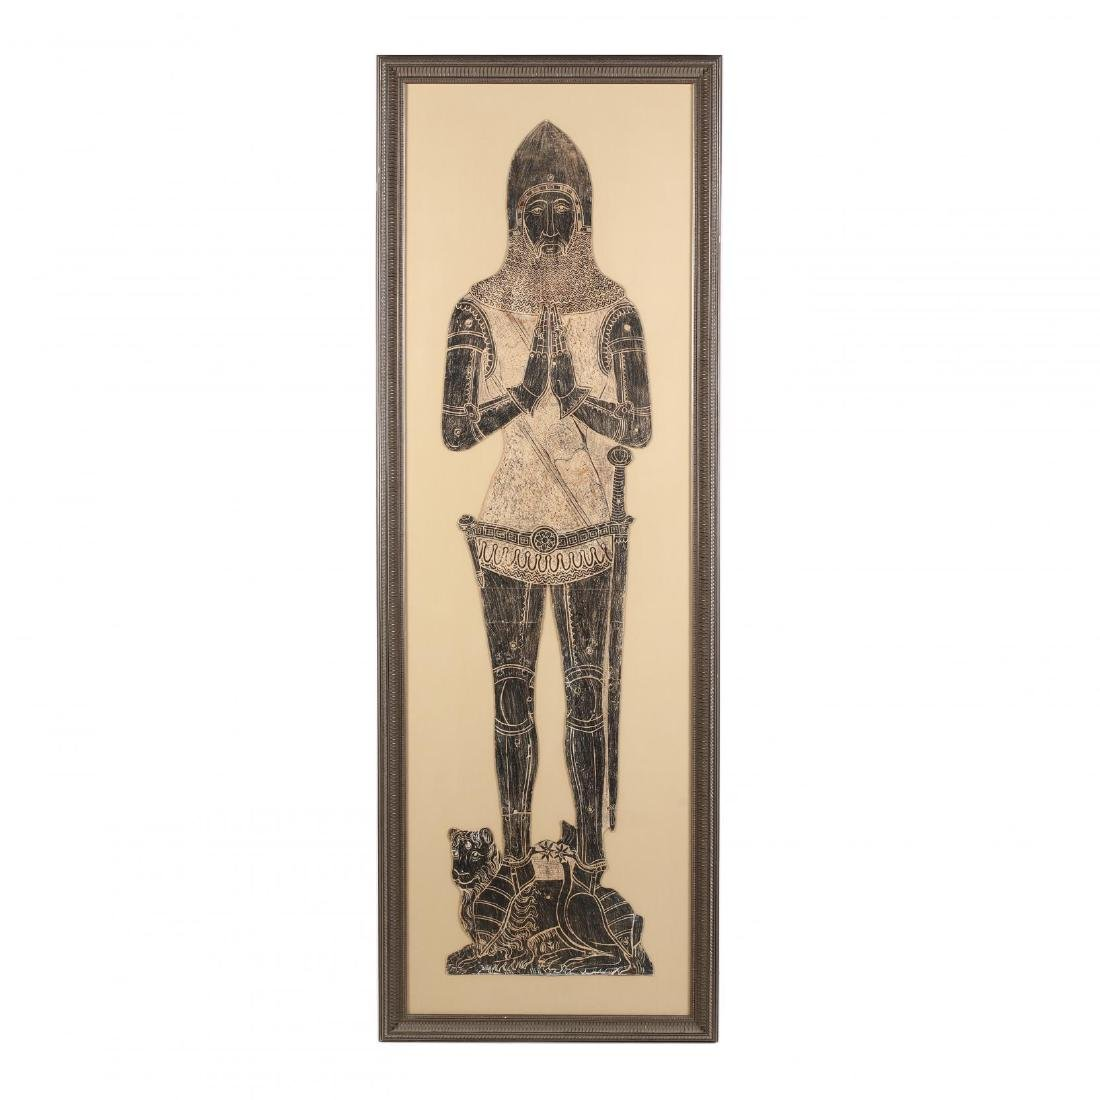 Monumental Brass Rubbing of an Armored Knight